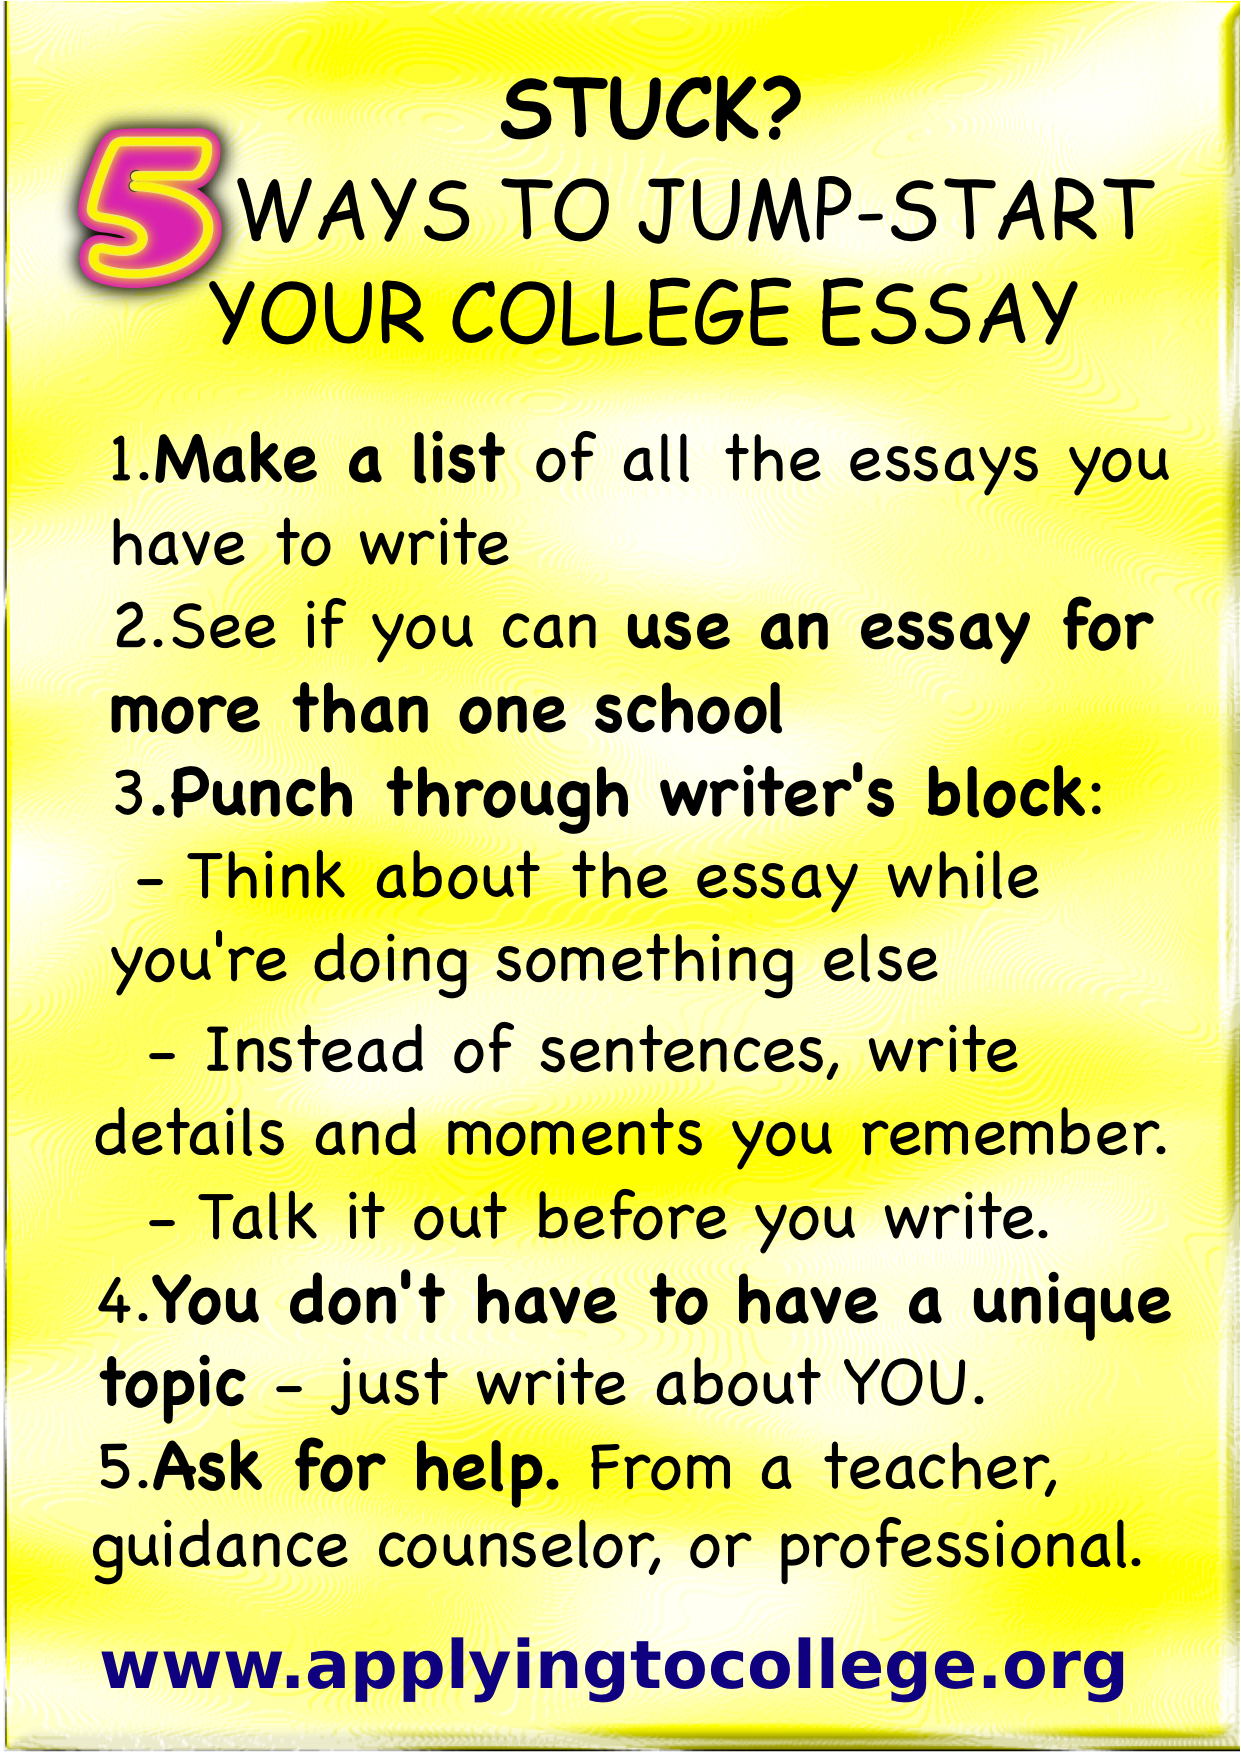 college essays com college essay about breast cancer essays college essays com tips to jump start your college essay applying to college